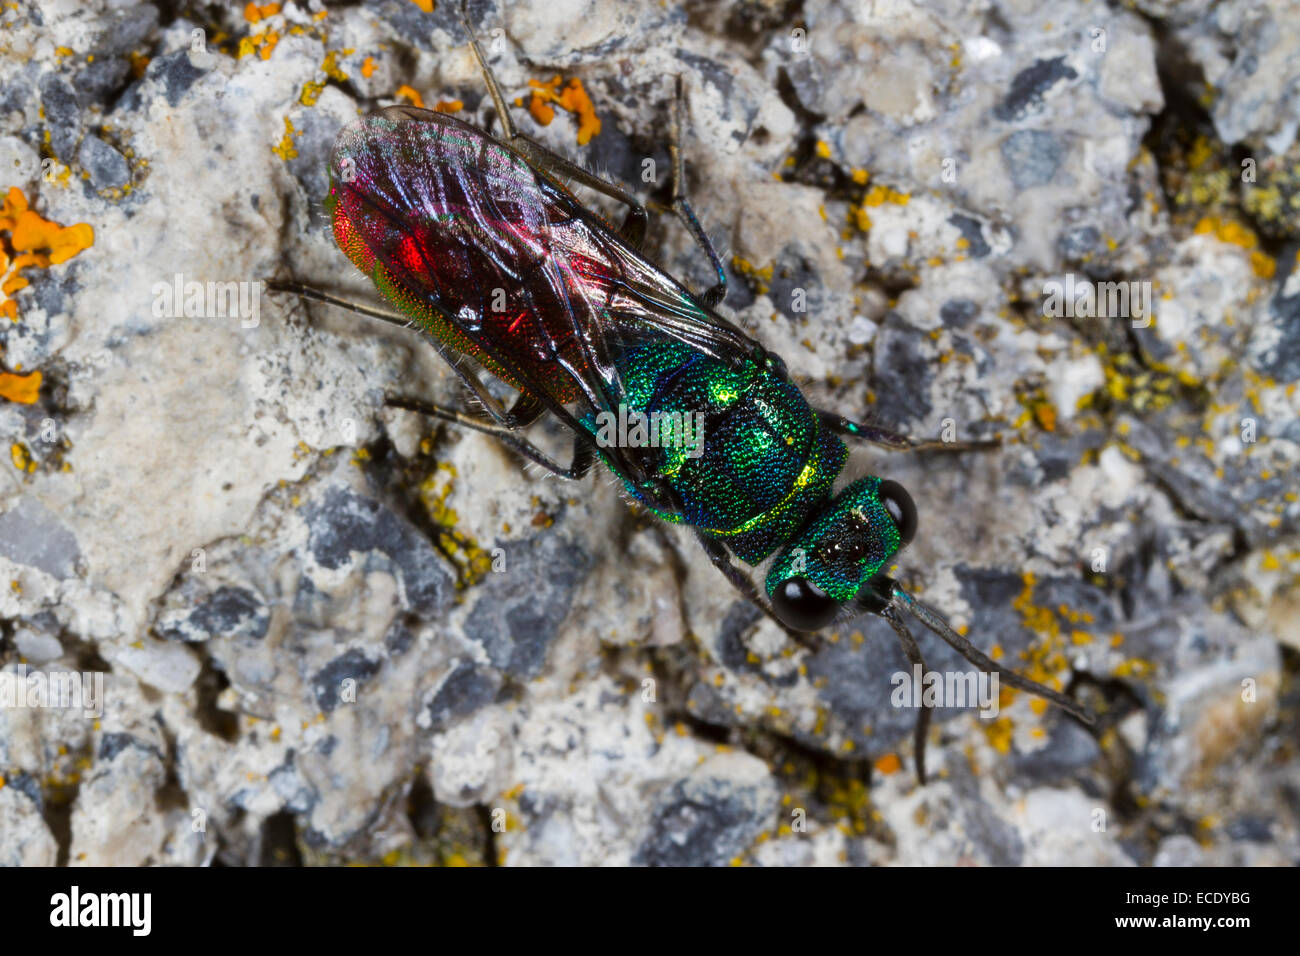 Ruby-tailed Wasp (Chrysis ignita) adult female on a wall. Powys, Wales. June. - Stock Image